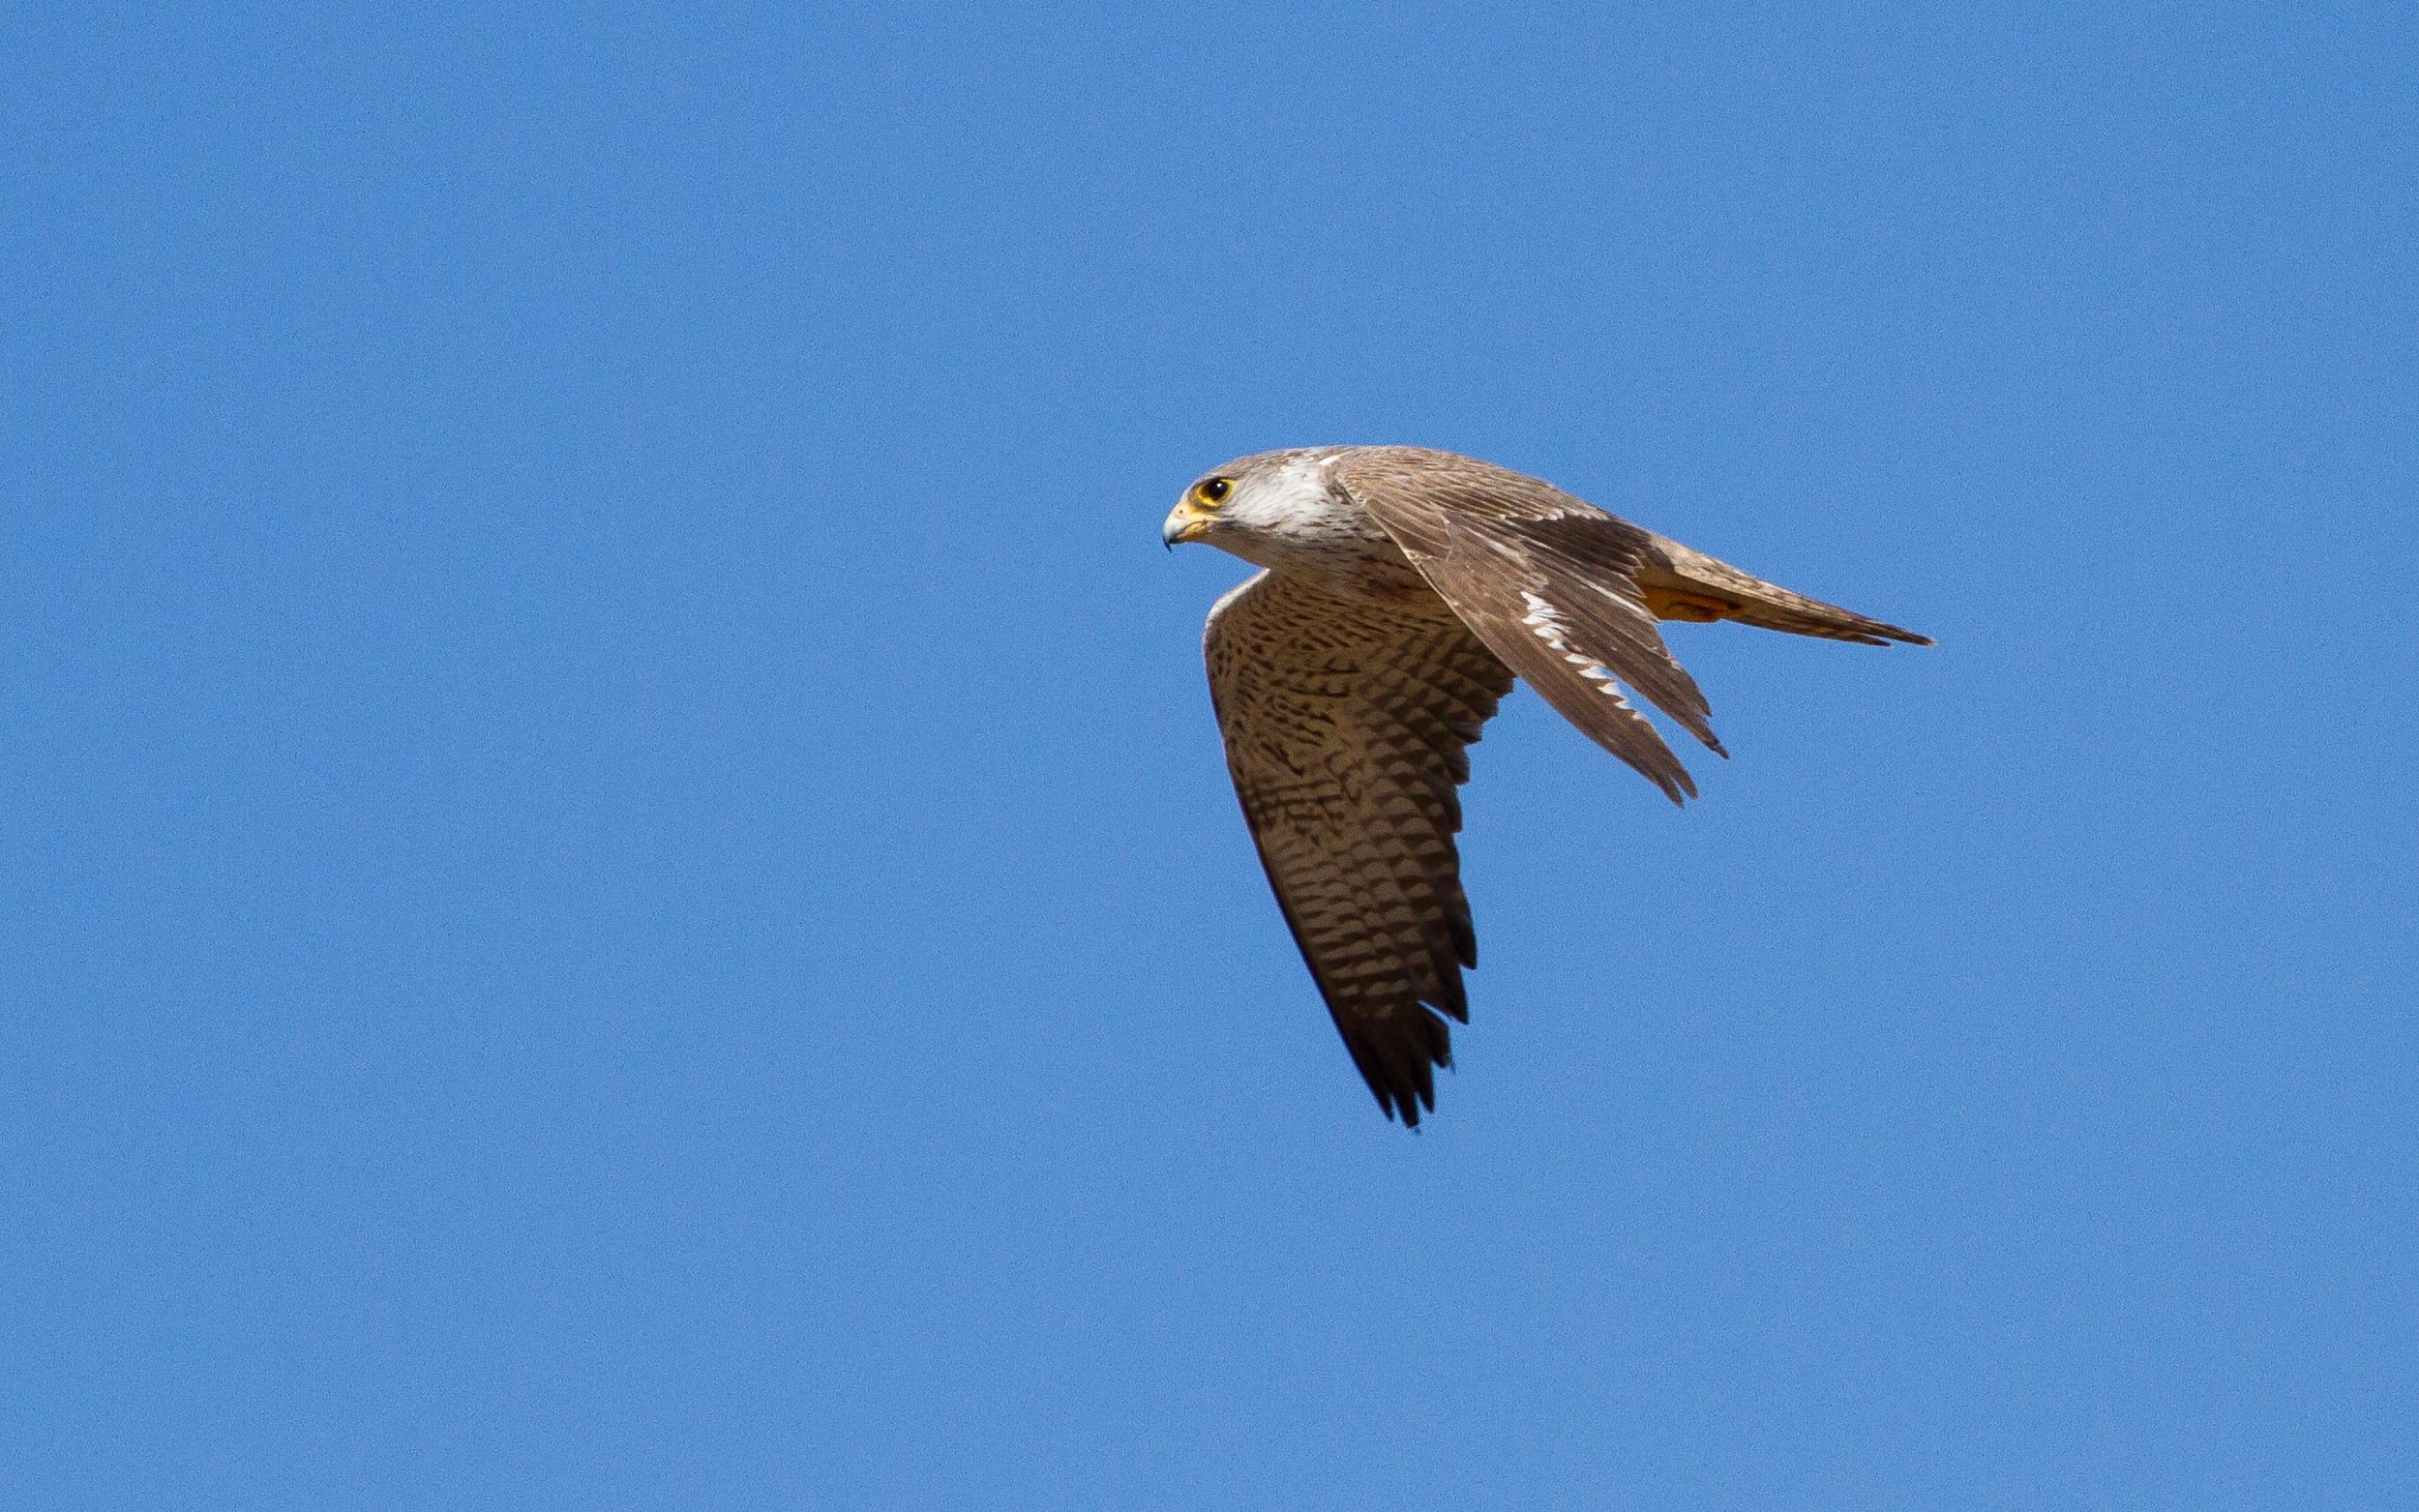 Grey Falcons are rare visitors to the Broome region, but two were seen in 2014. Image: © 2014 Ric Else